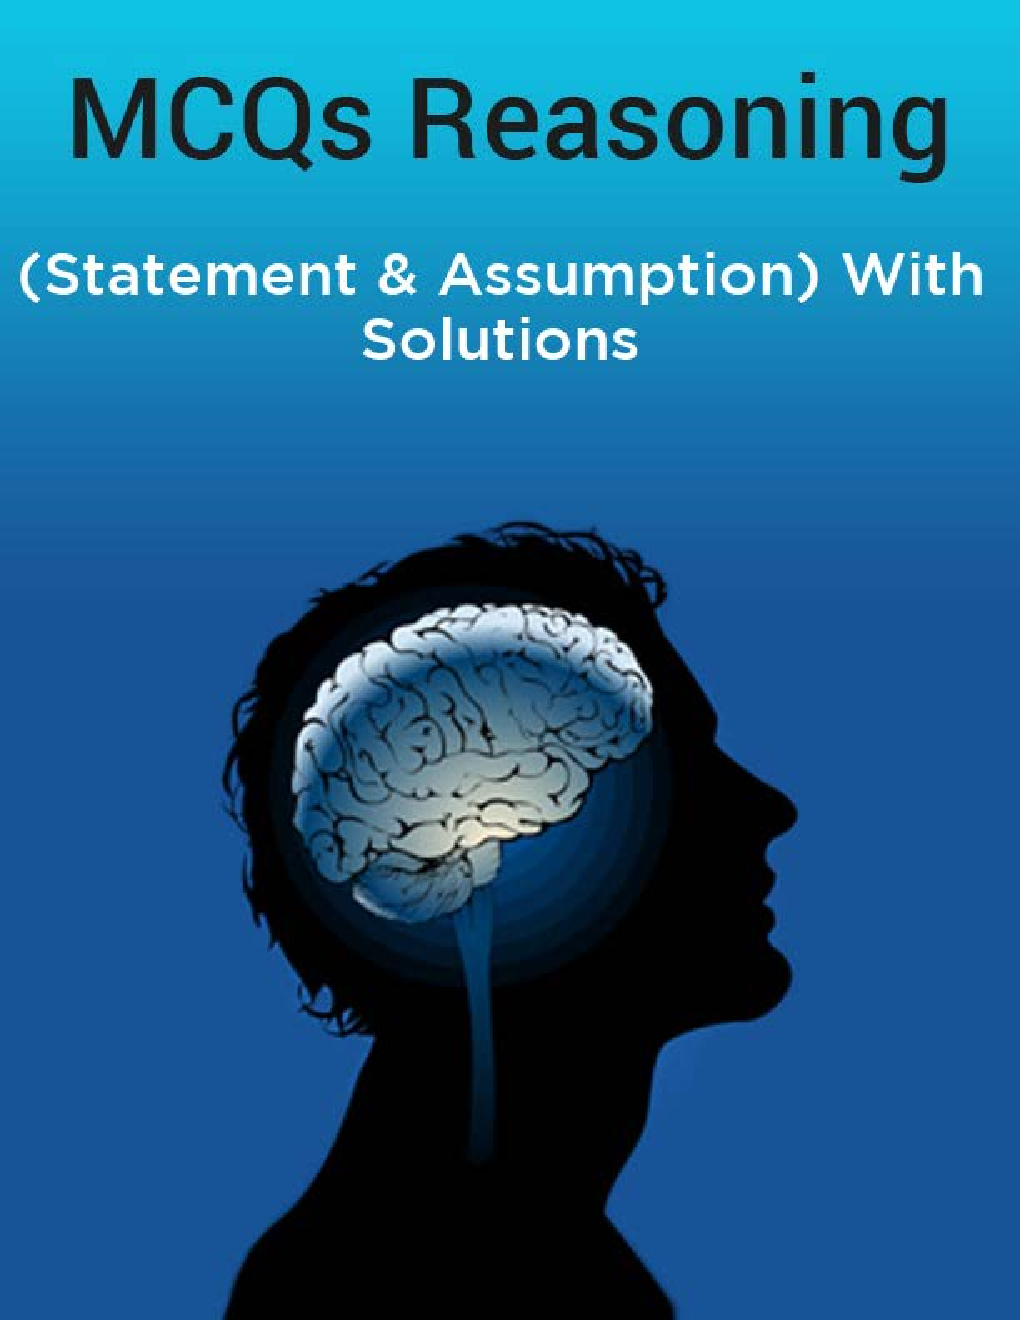 MCQs Reasoning (Statement & Assumption) With Solutions - Page 1